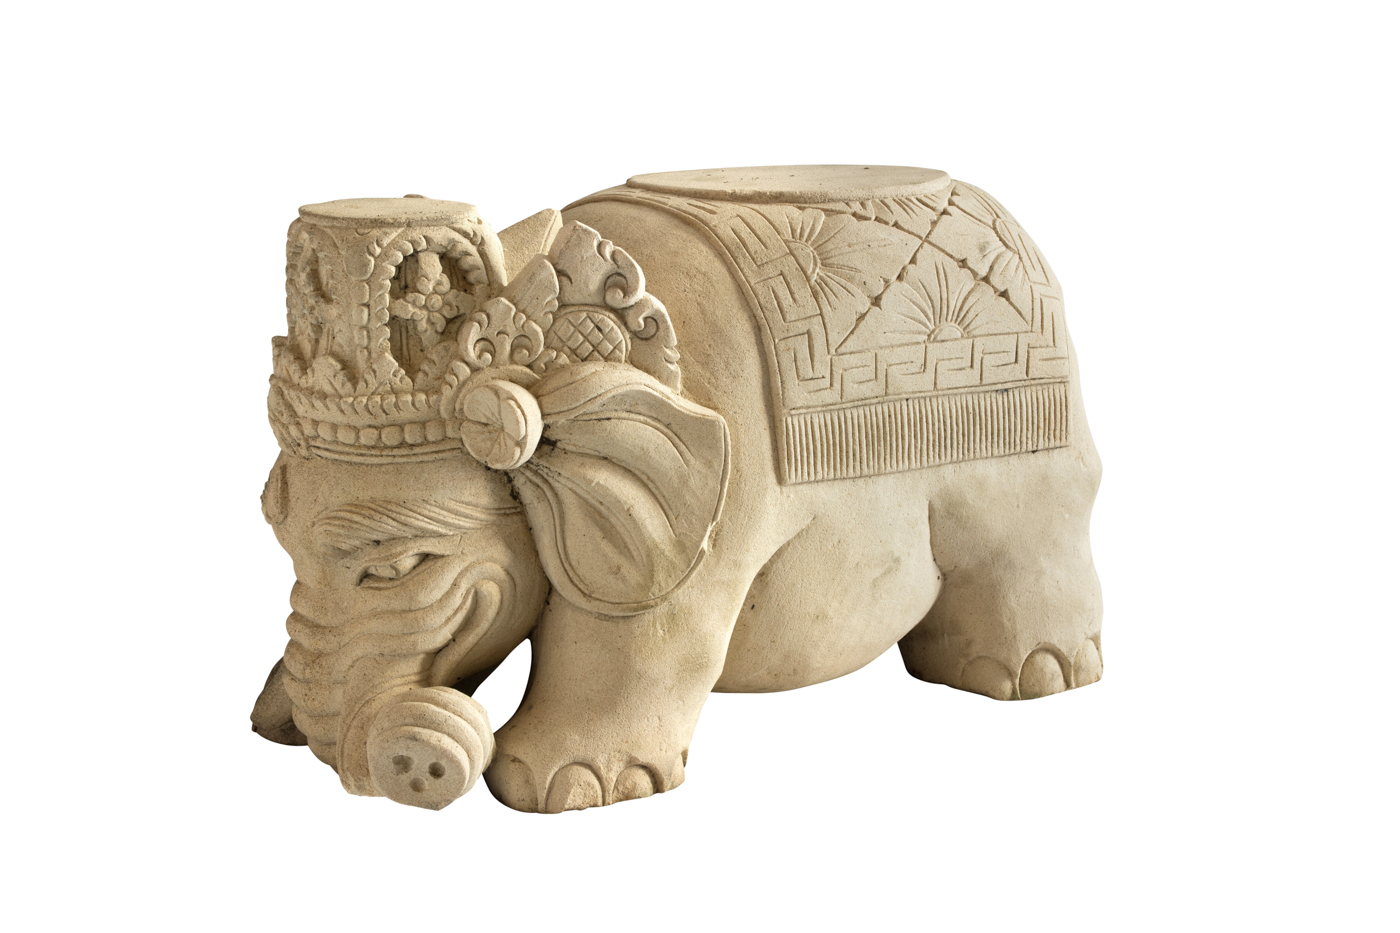 Elephant carved in white limestone